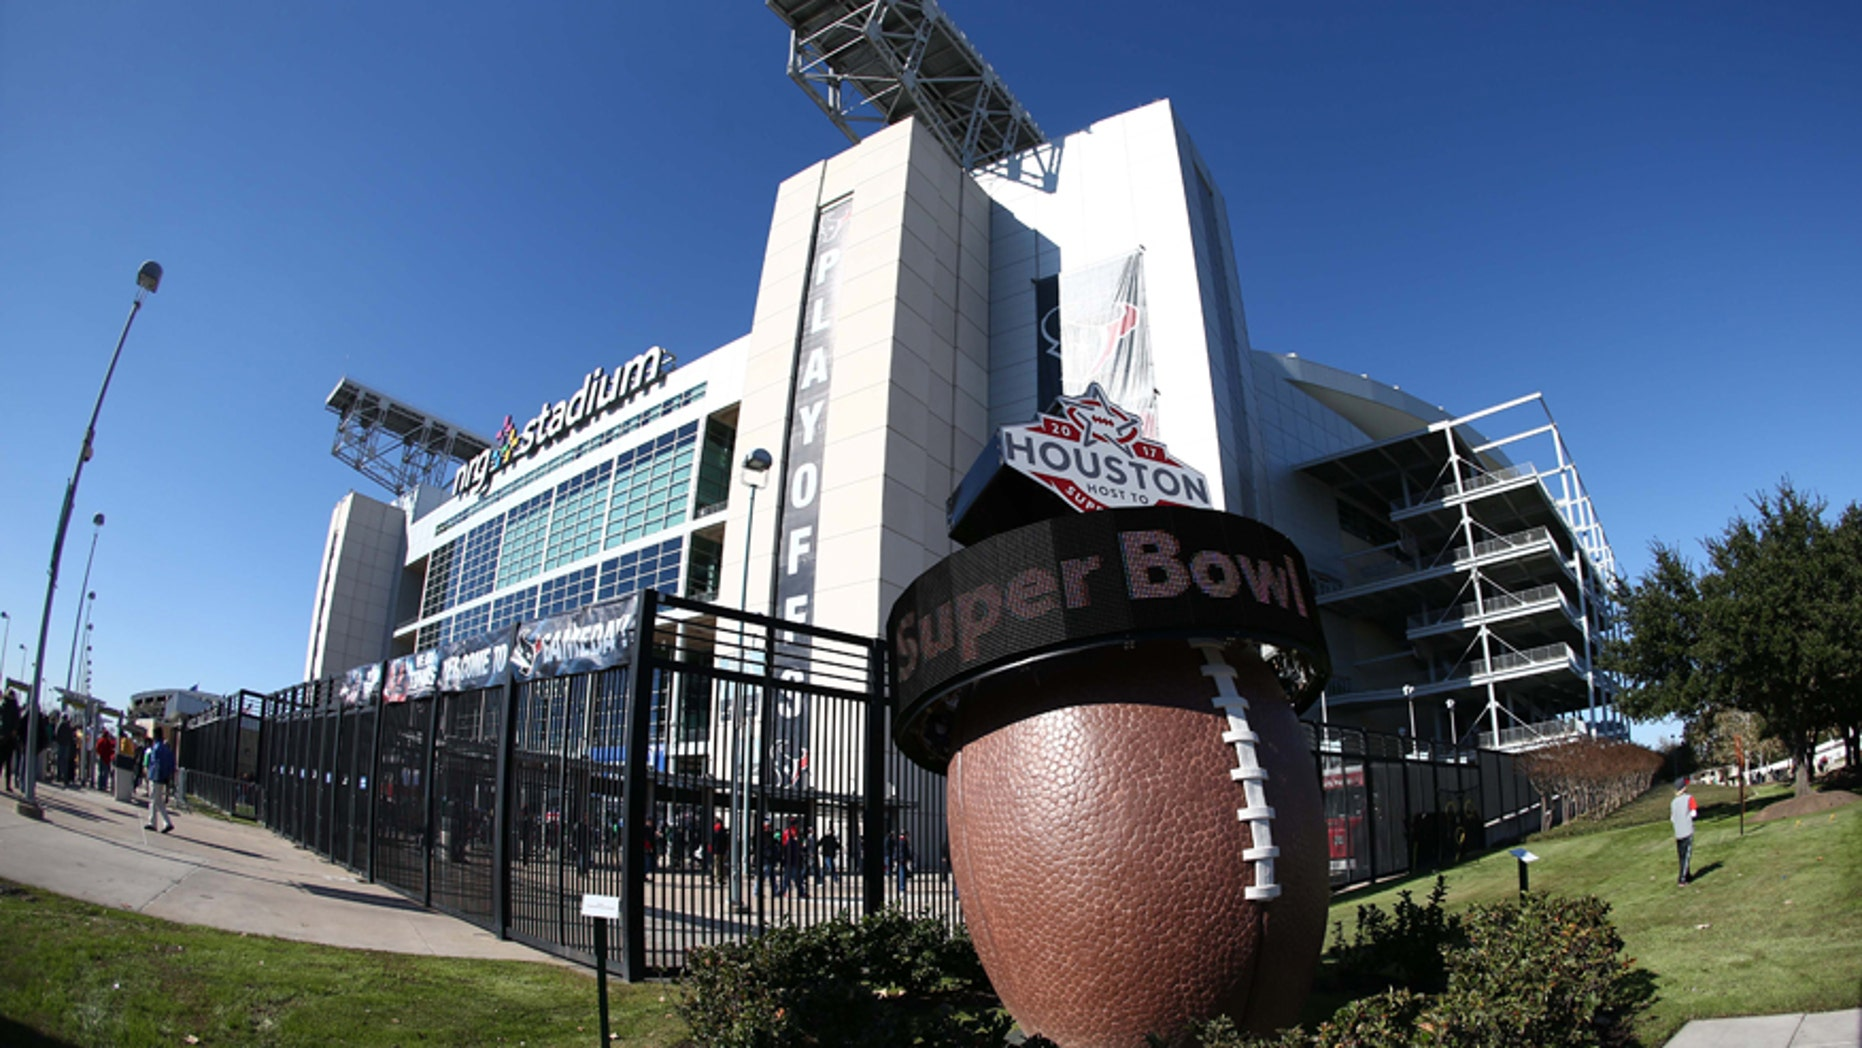 File photo - Jan 7, 2017; Houston, TX, USA; A countdown to Super Bowl LI scrolls outside of NRG Stadium before the AFC Wild Card playoff football game between the Houston Texans and the Oakland Raiders. (Mandatory Credit: Troy Taormina-USA TODAY Sports)